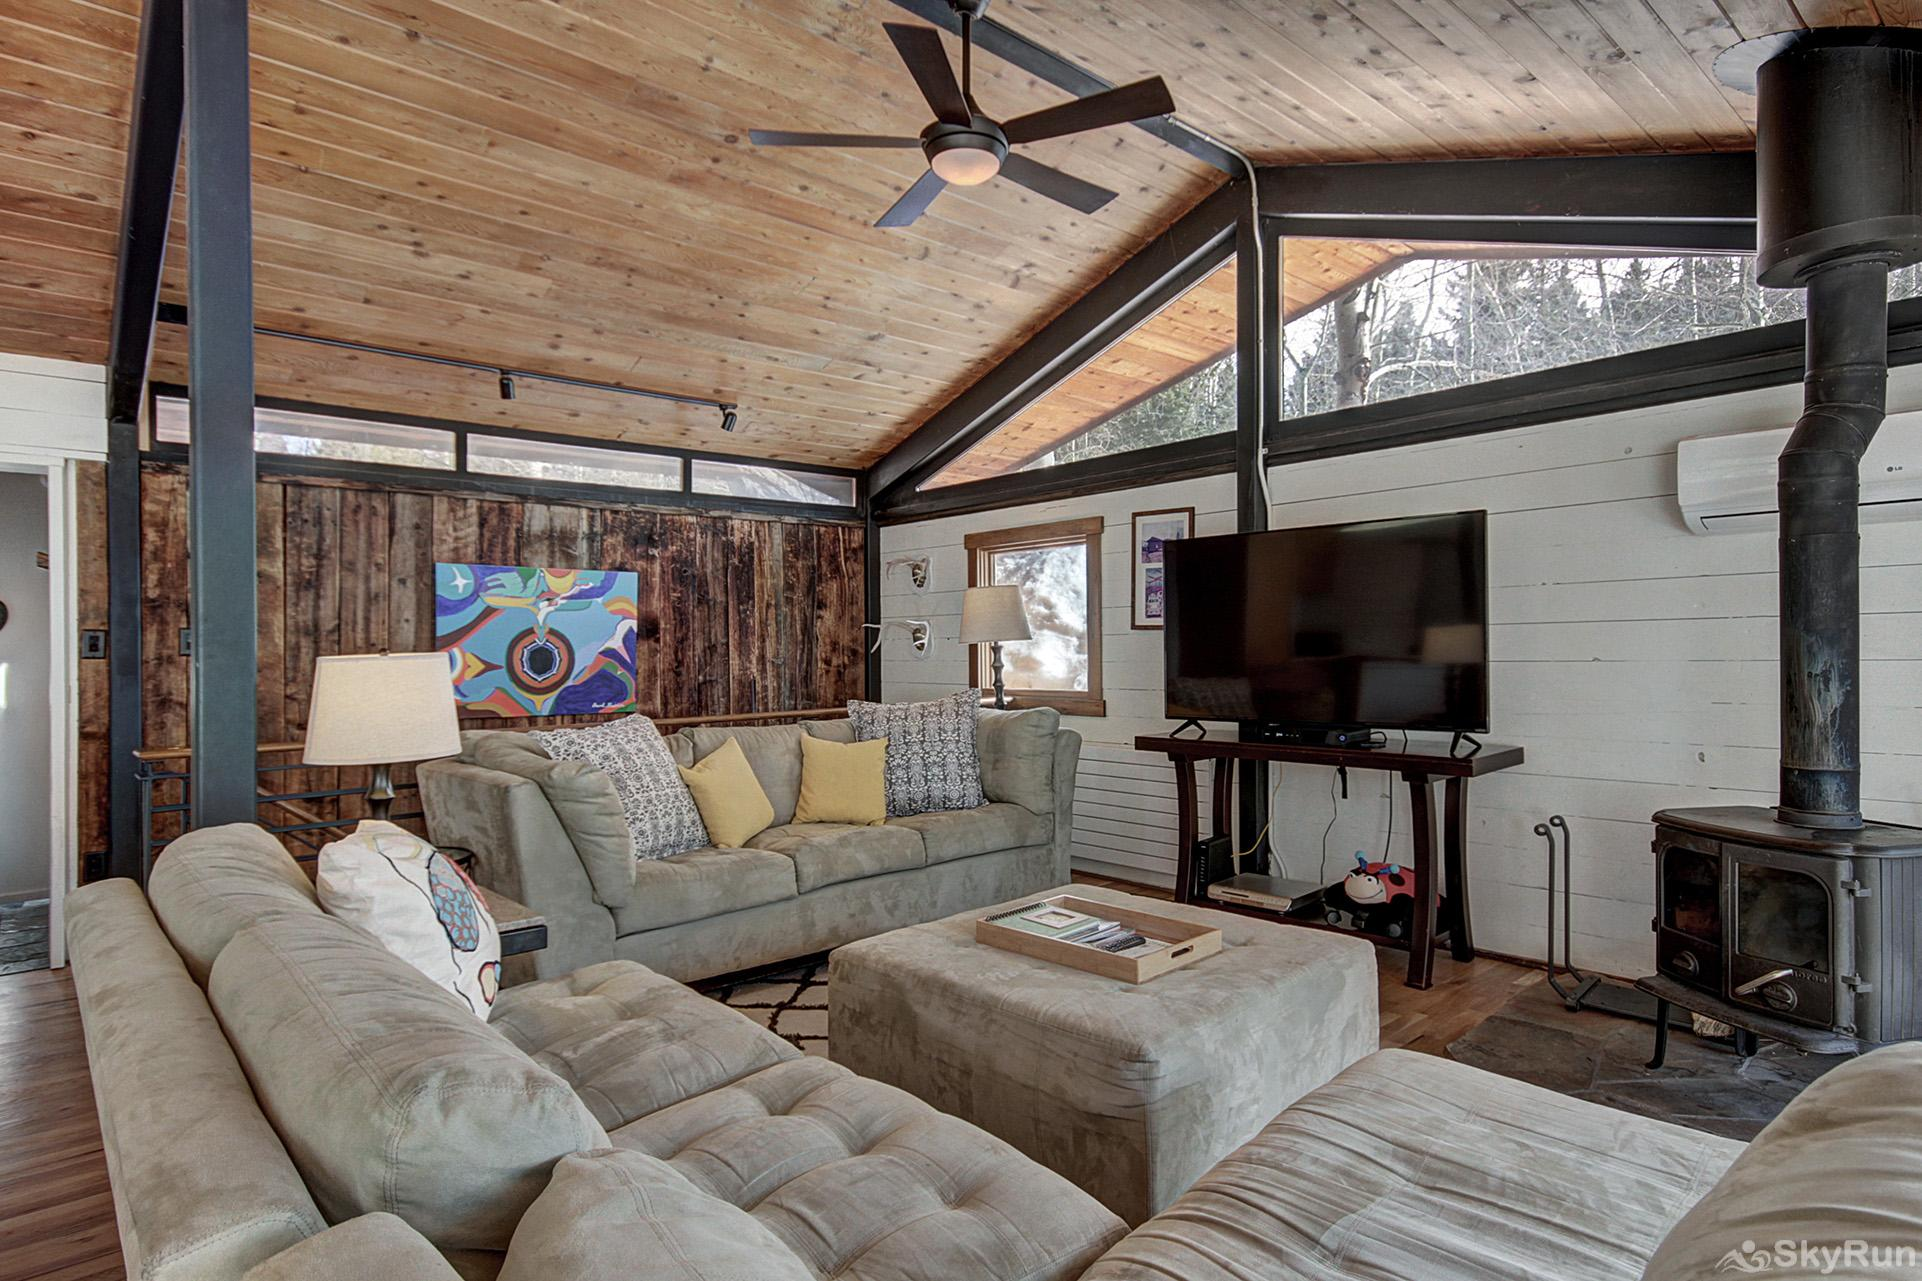 Elk Horn Cabin Spacious living room area with wood fireplace, flat screen TV